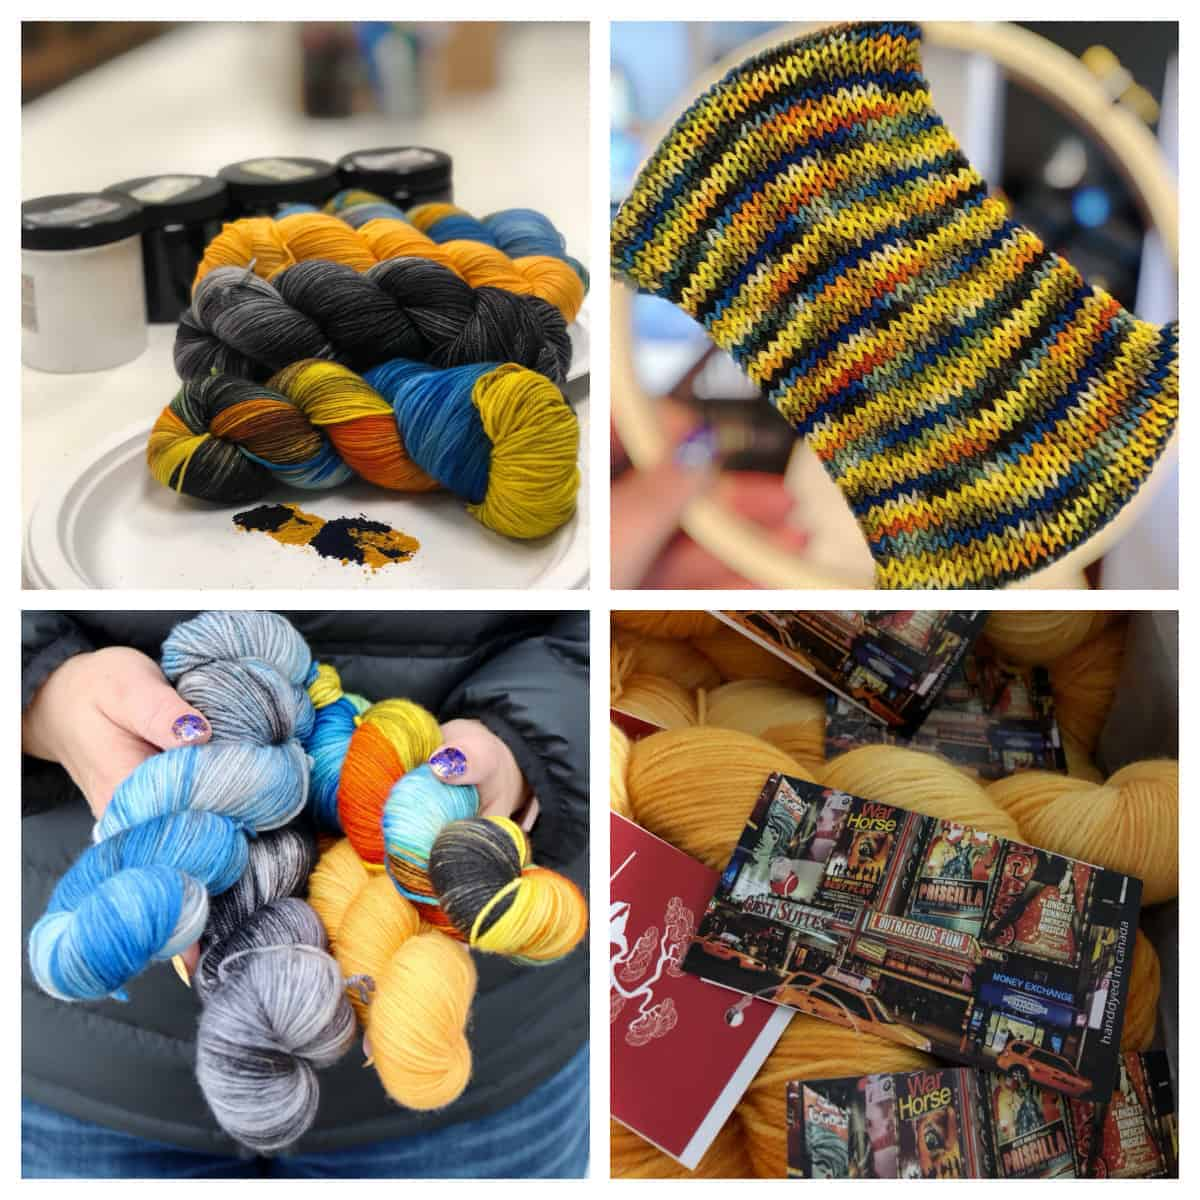 A selection of blue and gold yarn.